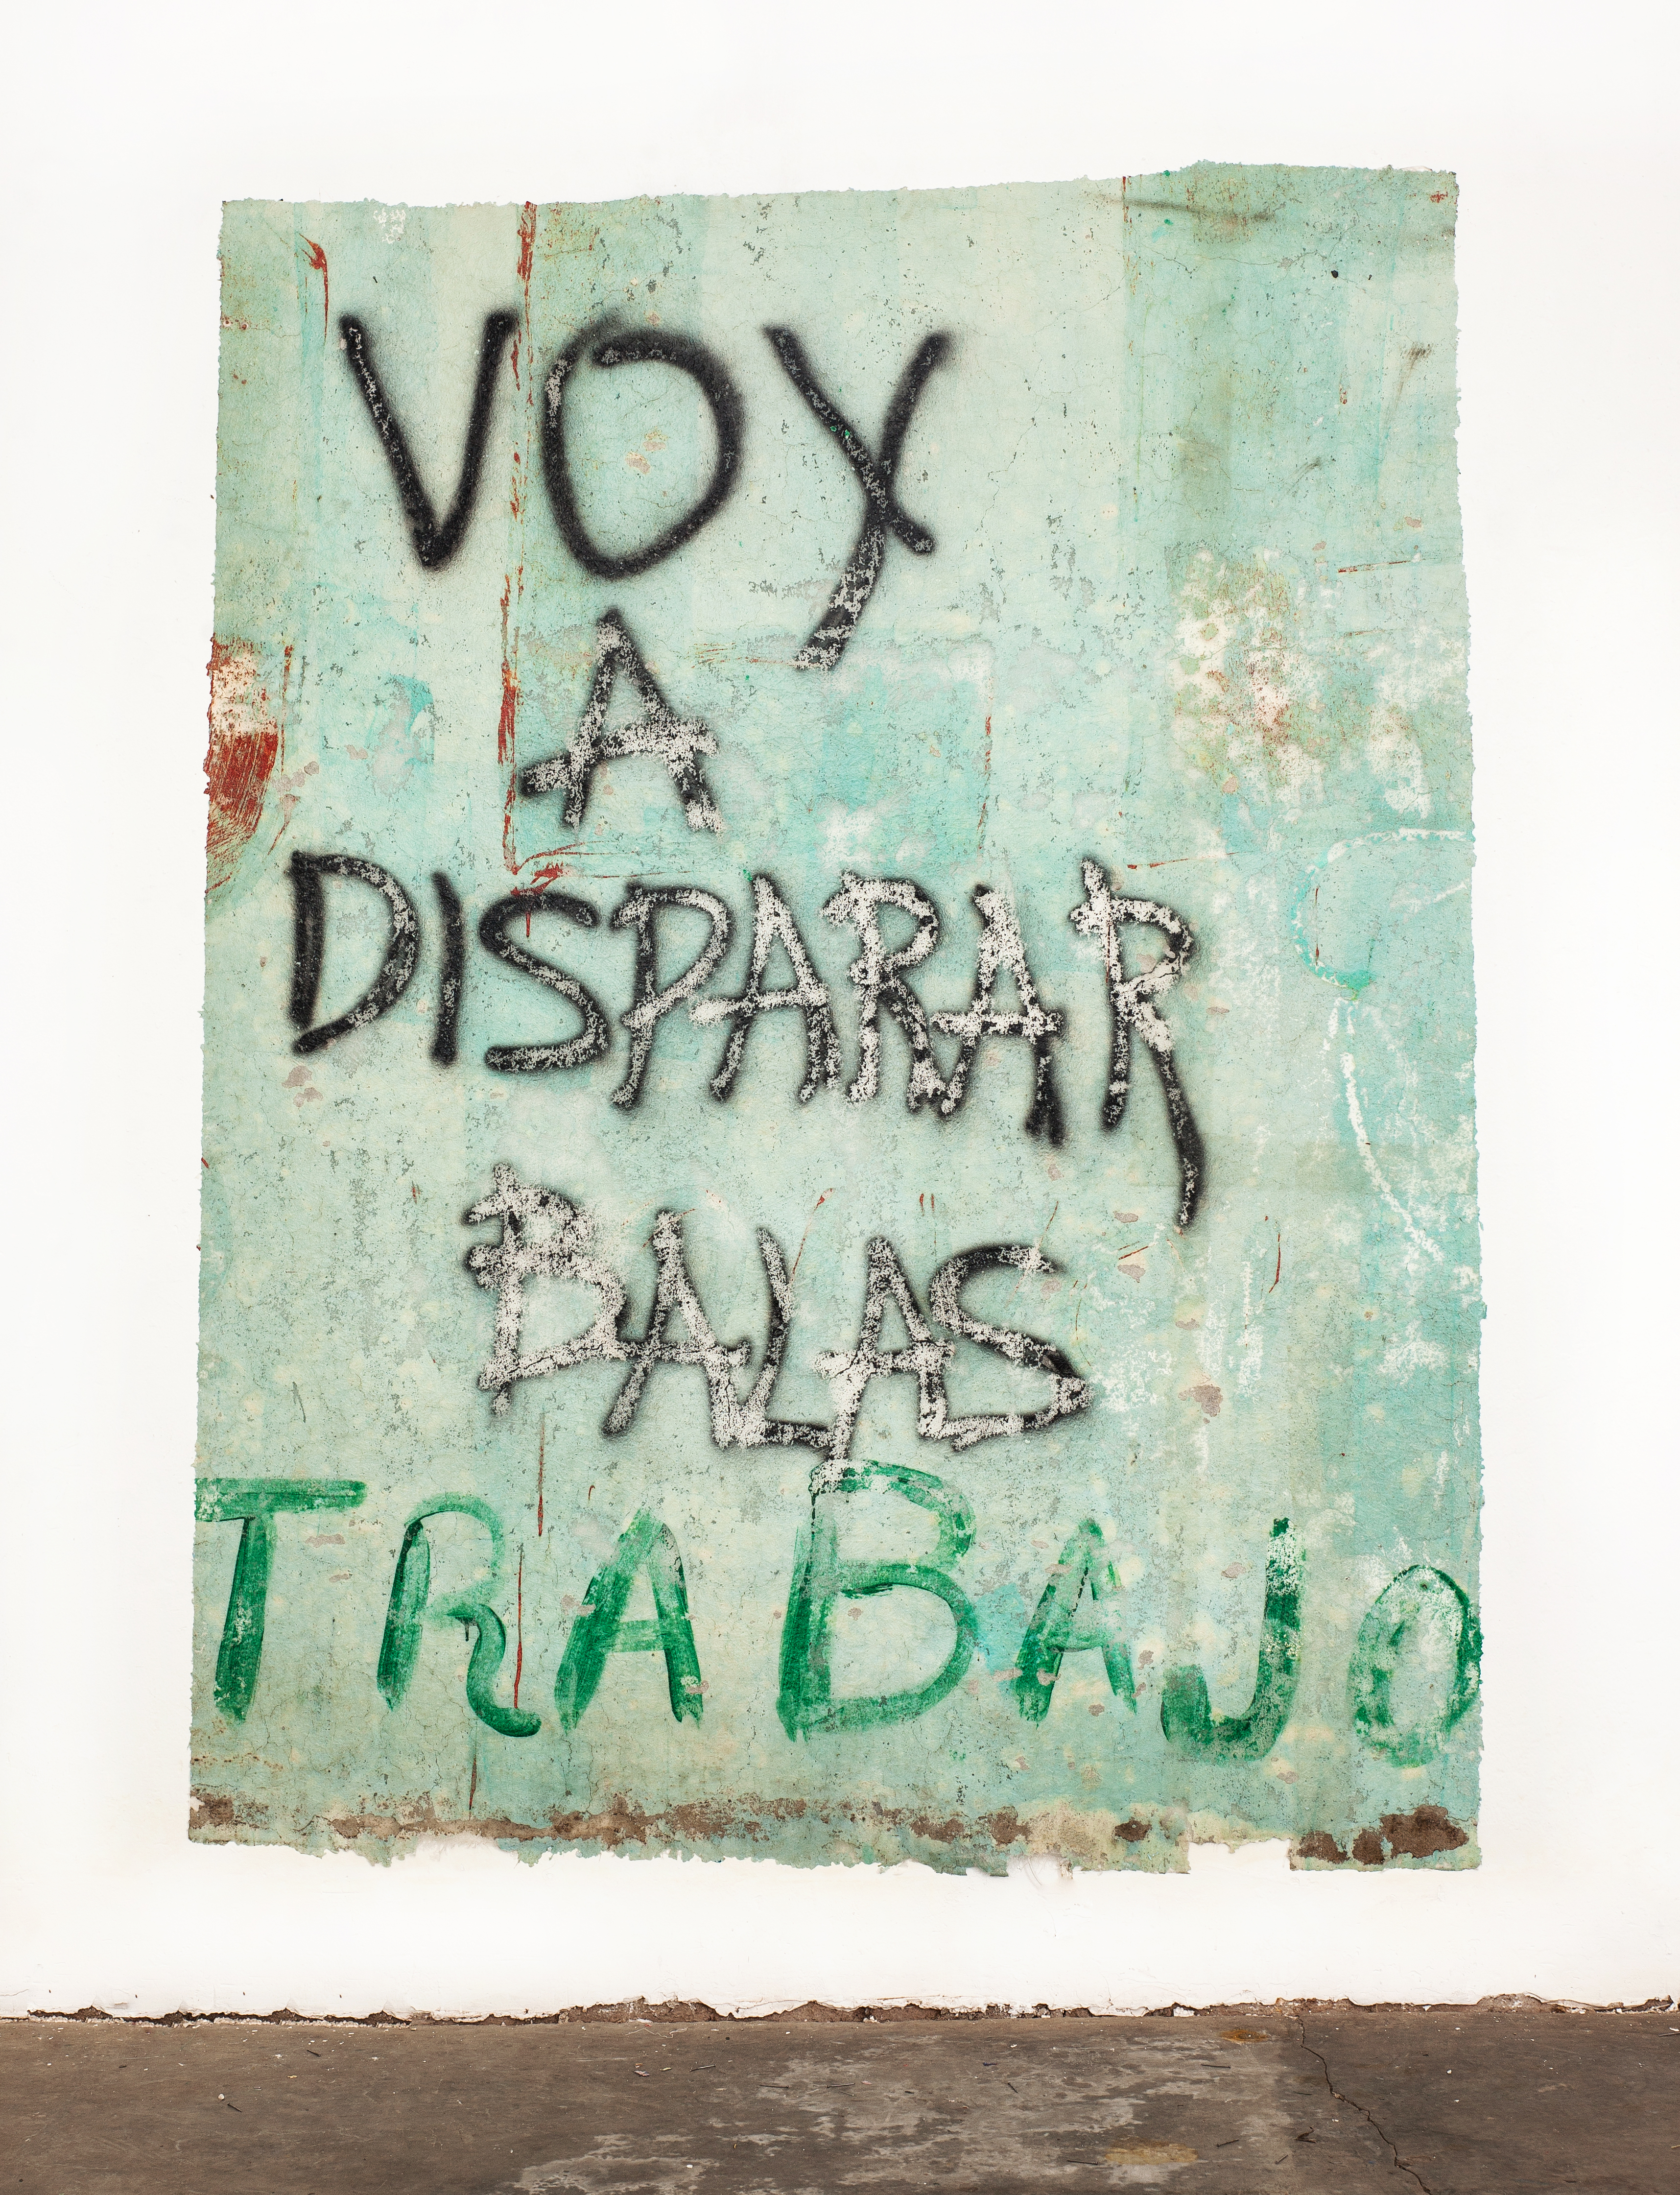 José Carlos Martinat 2021 Acrylic, fiberglass and found graffiti wall extraction 91.3 x 68.8 inches (232 x 175 cm) 2021 Marc Straus Gallery